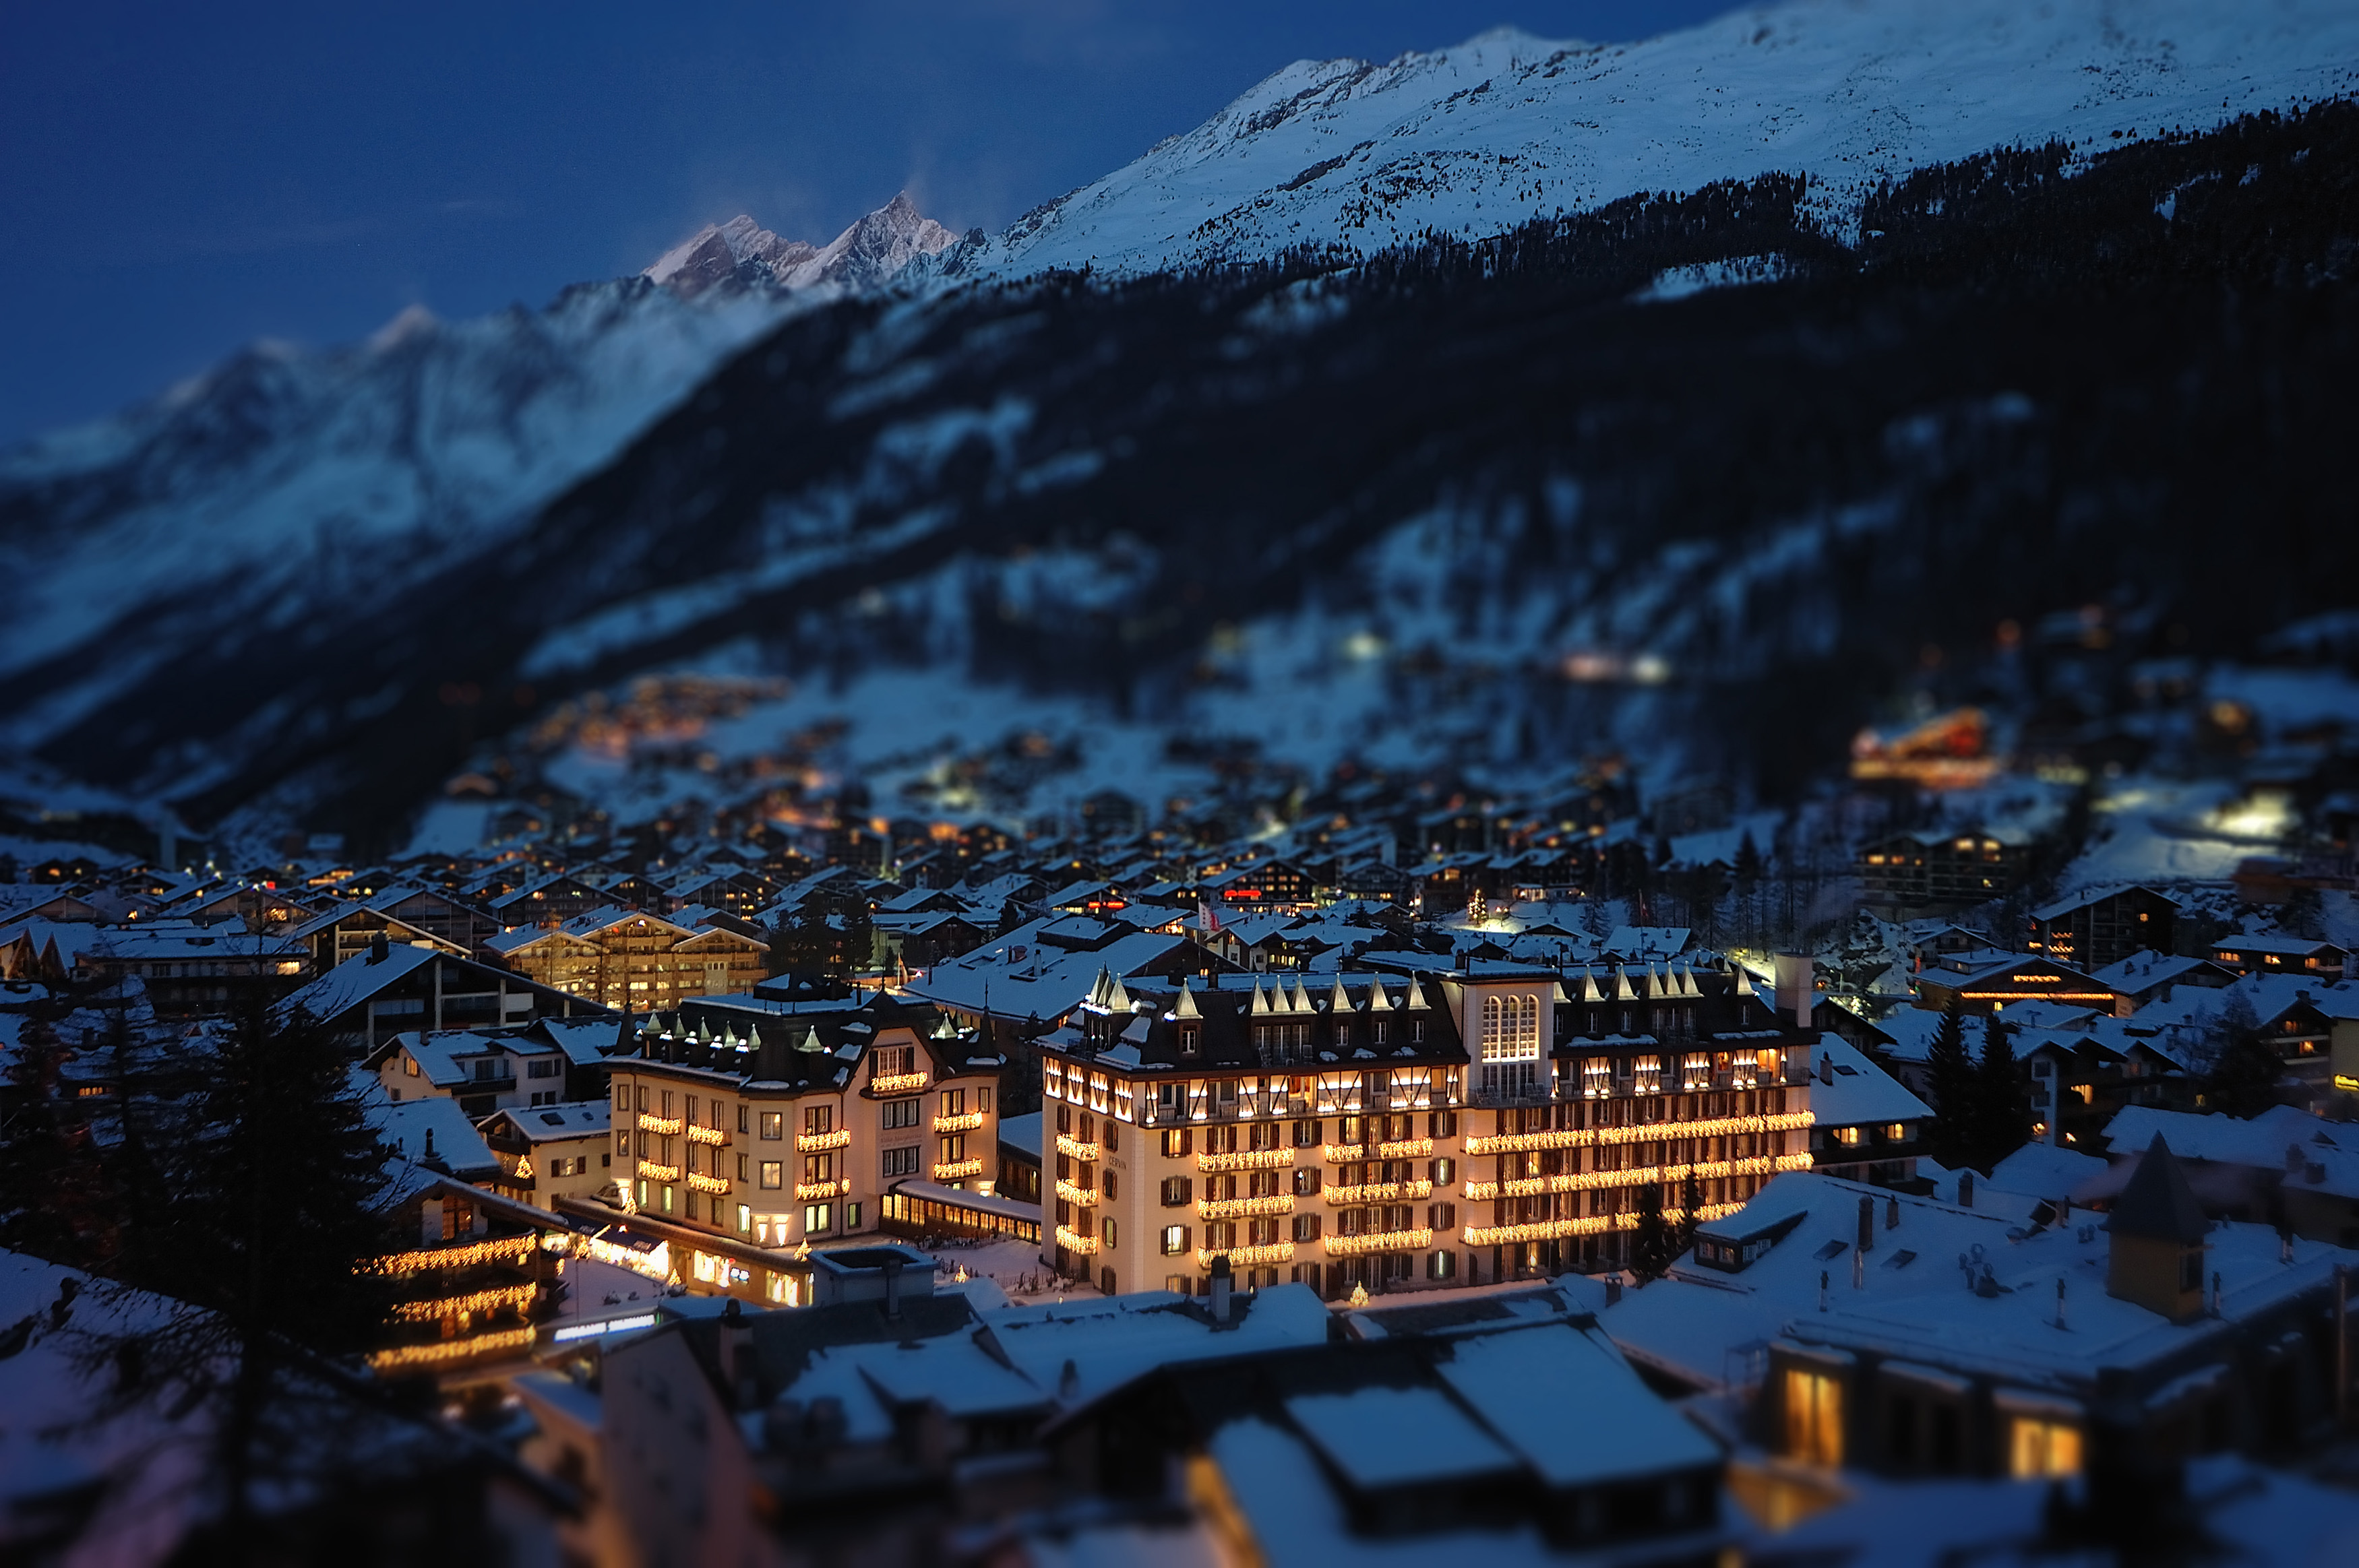 Christmas In Zermatt Switzerland Fondo De Pantalla Hd